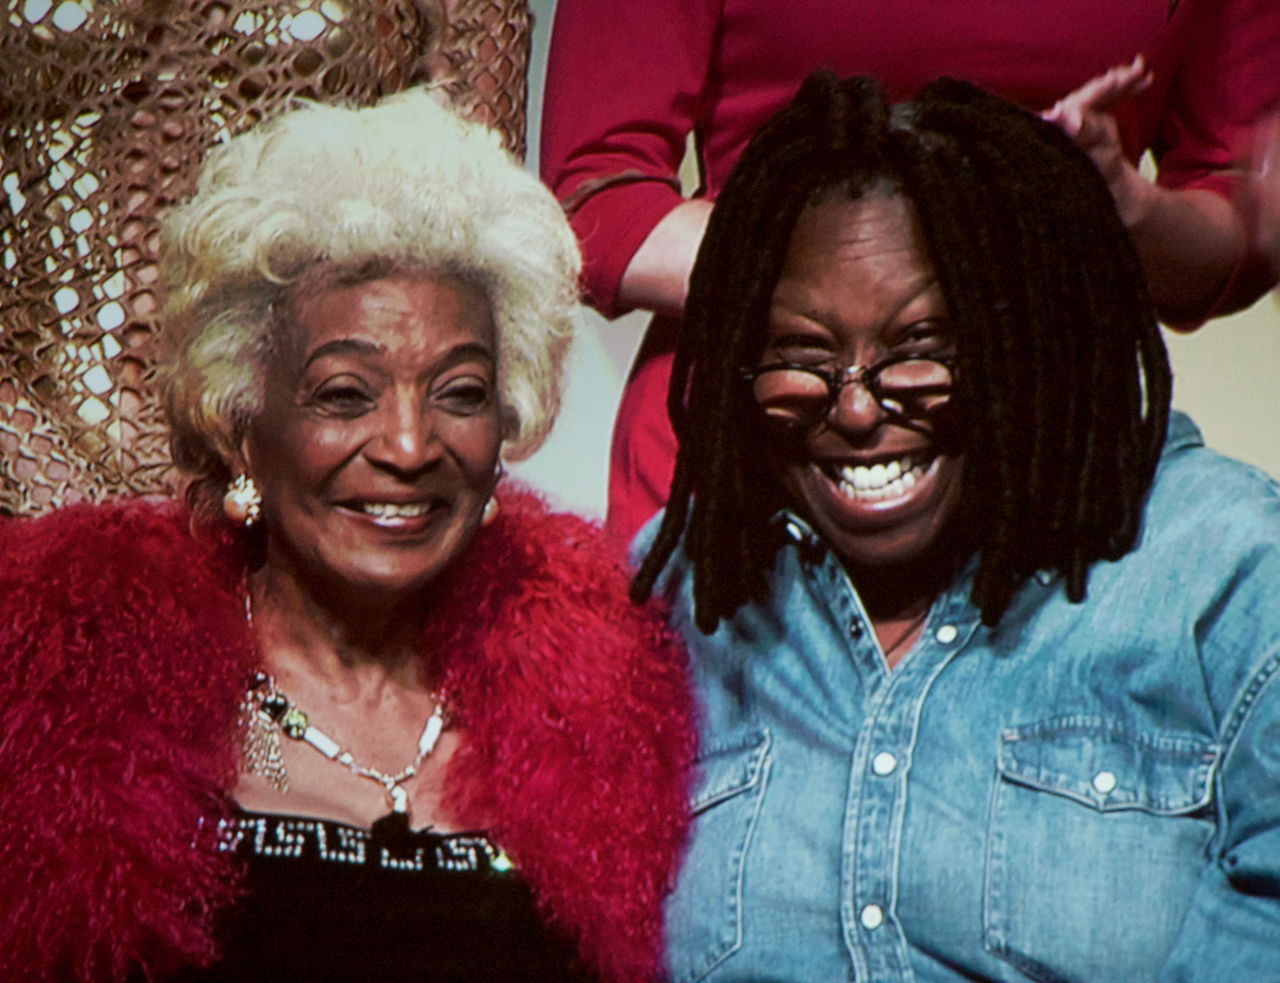 Nichelle Nichols and Whoopi Goldberg smiling on stage at STLV 2016